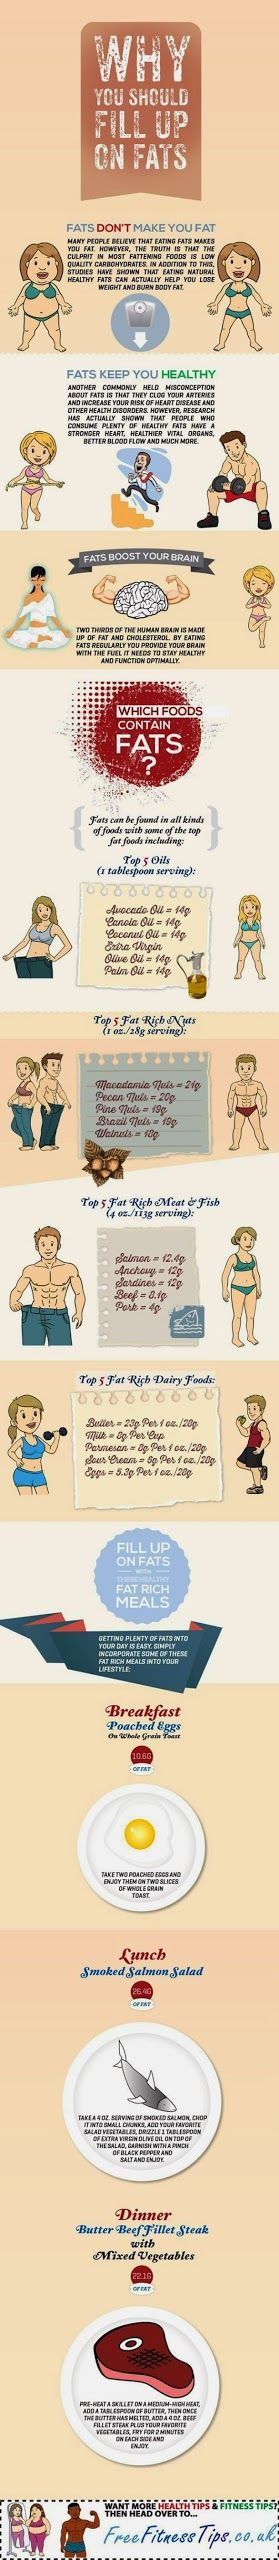 Why You Should Fill Up On Fats